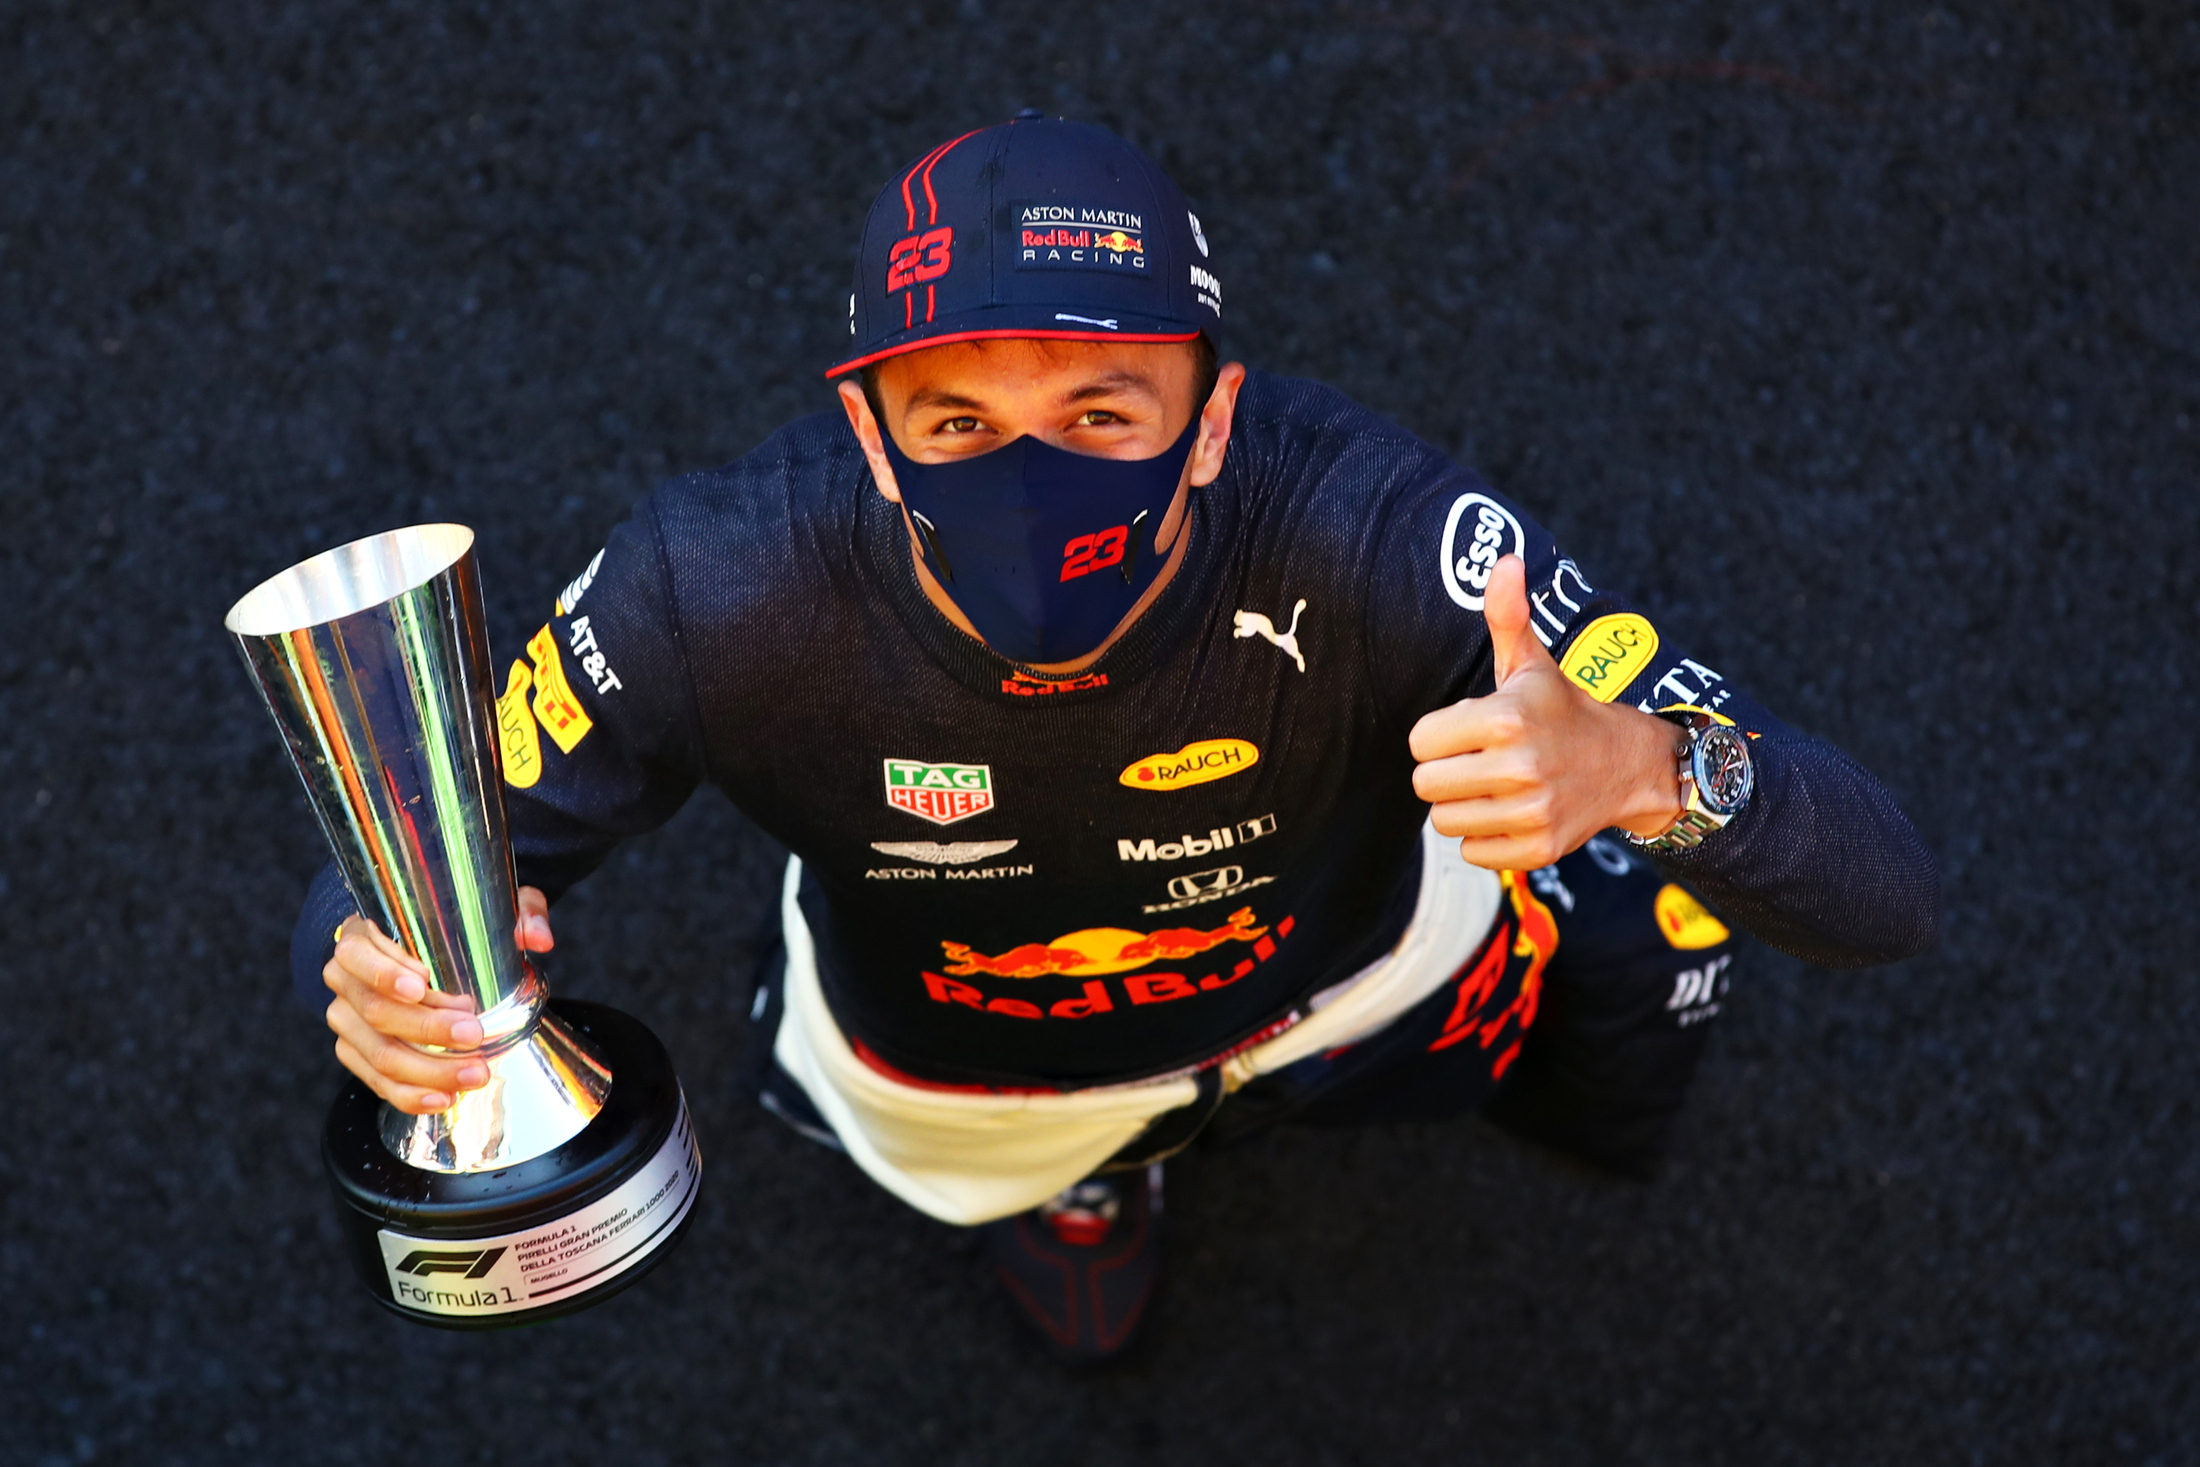 He Had To Really Fight For It Horner Says Mugello Podium Will Be Turning Point For Albon Formula 1